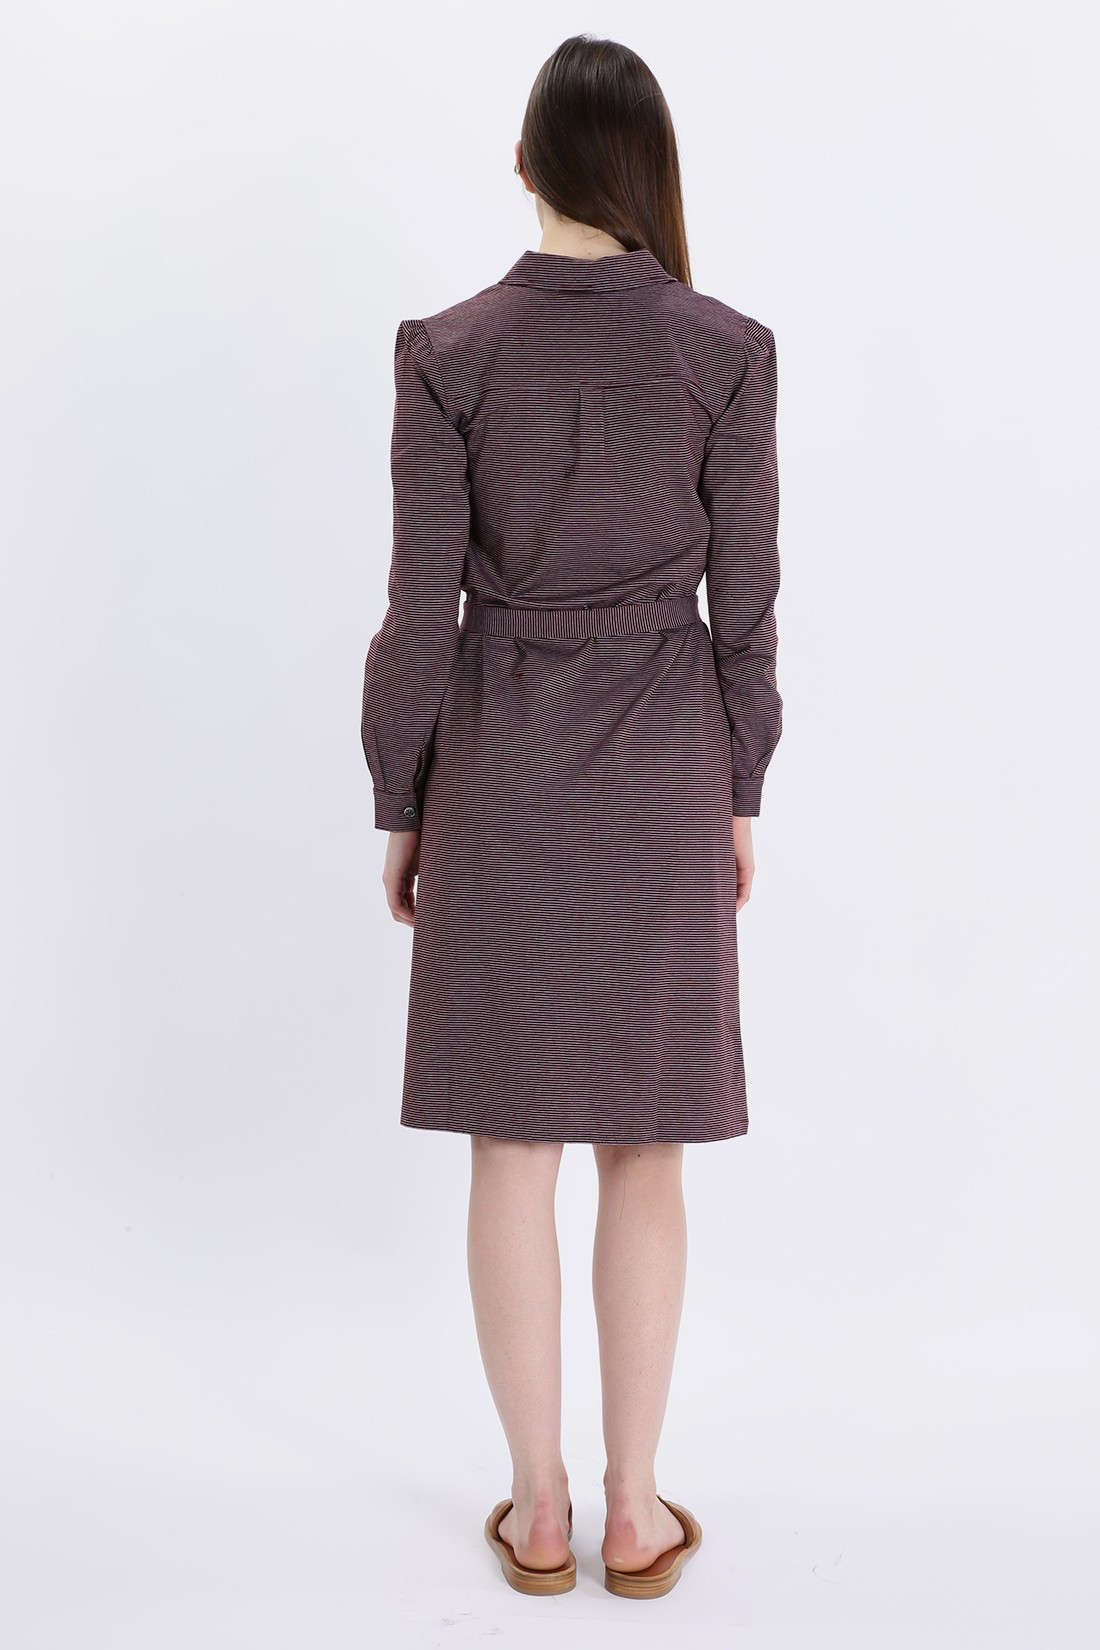 A.P.C. FOR WOMAN / Robe coco Lie de vin